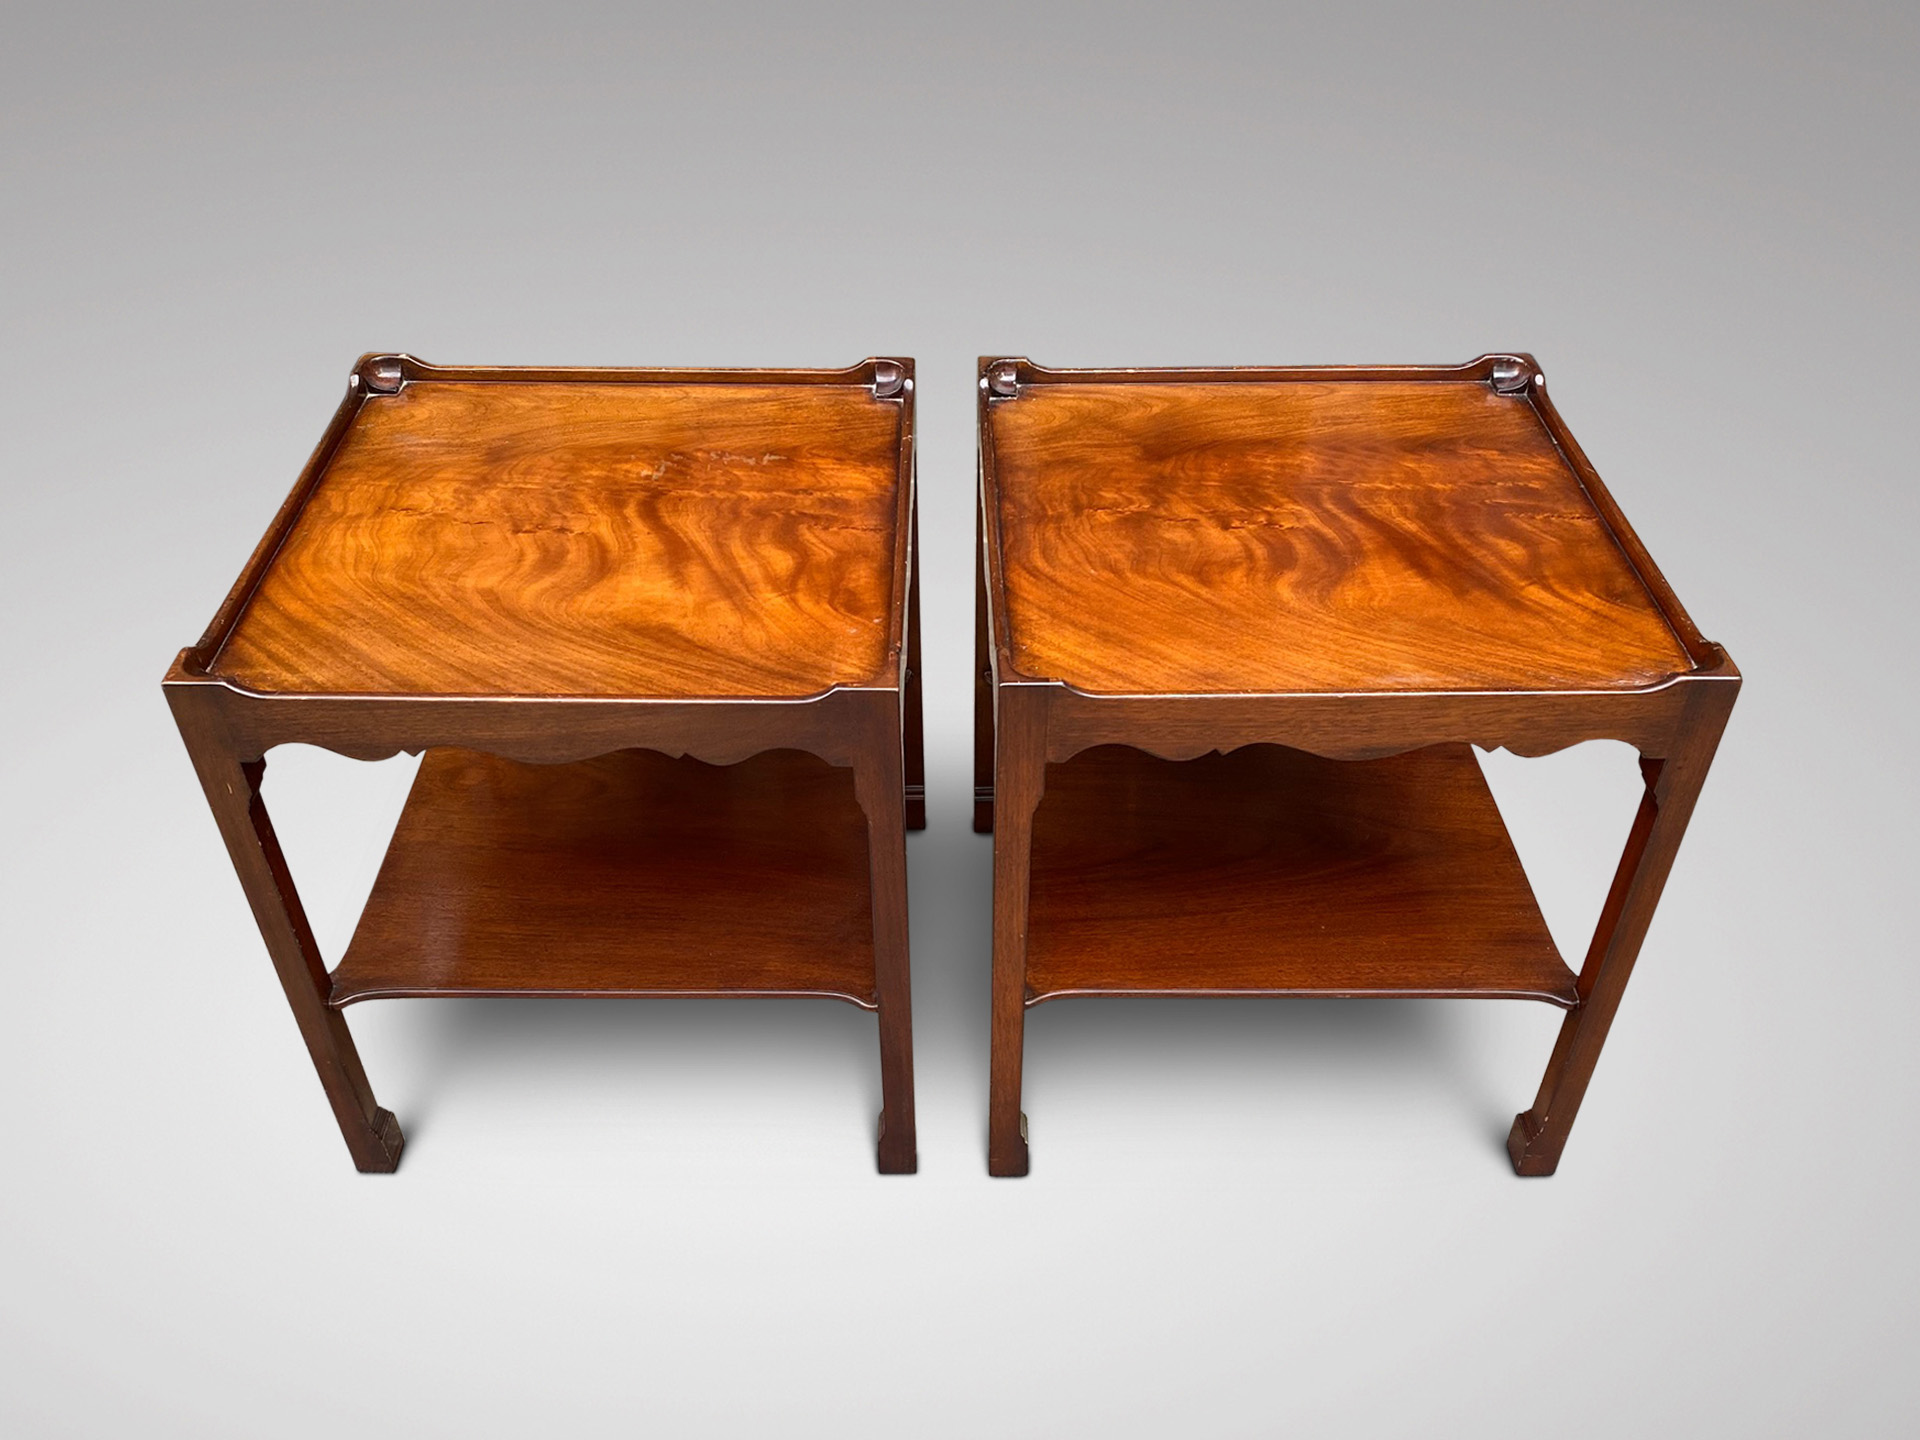 SOLD/PAIR OF 20C MAHOGANY SIDE TABLES BY SMITH & WATSON